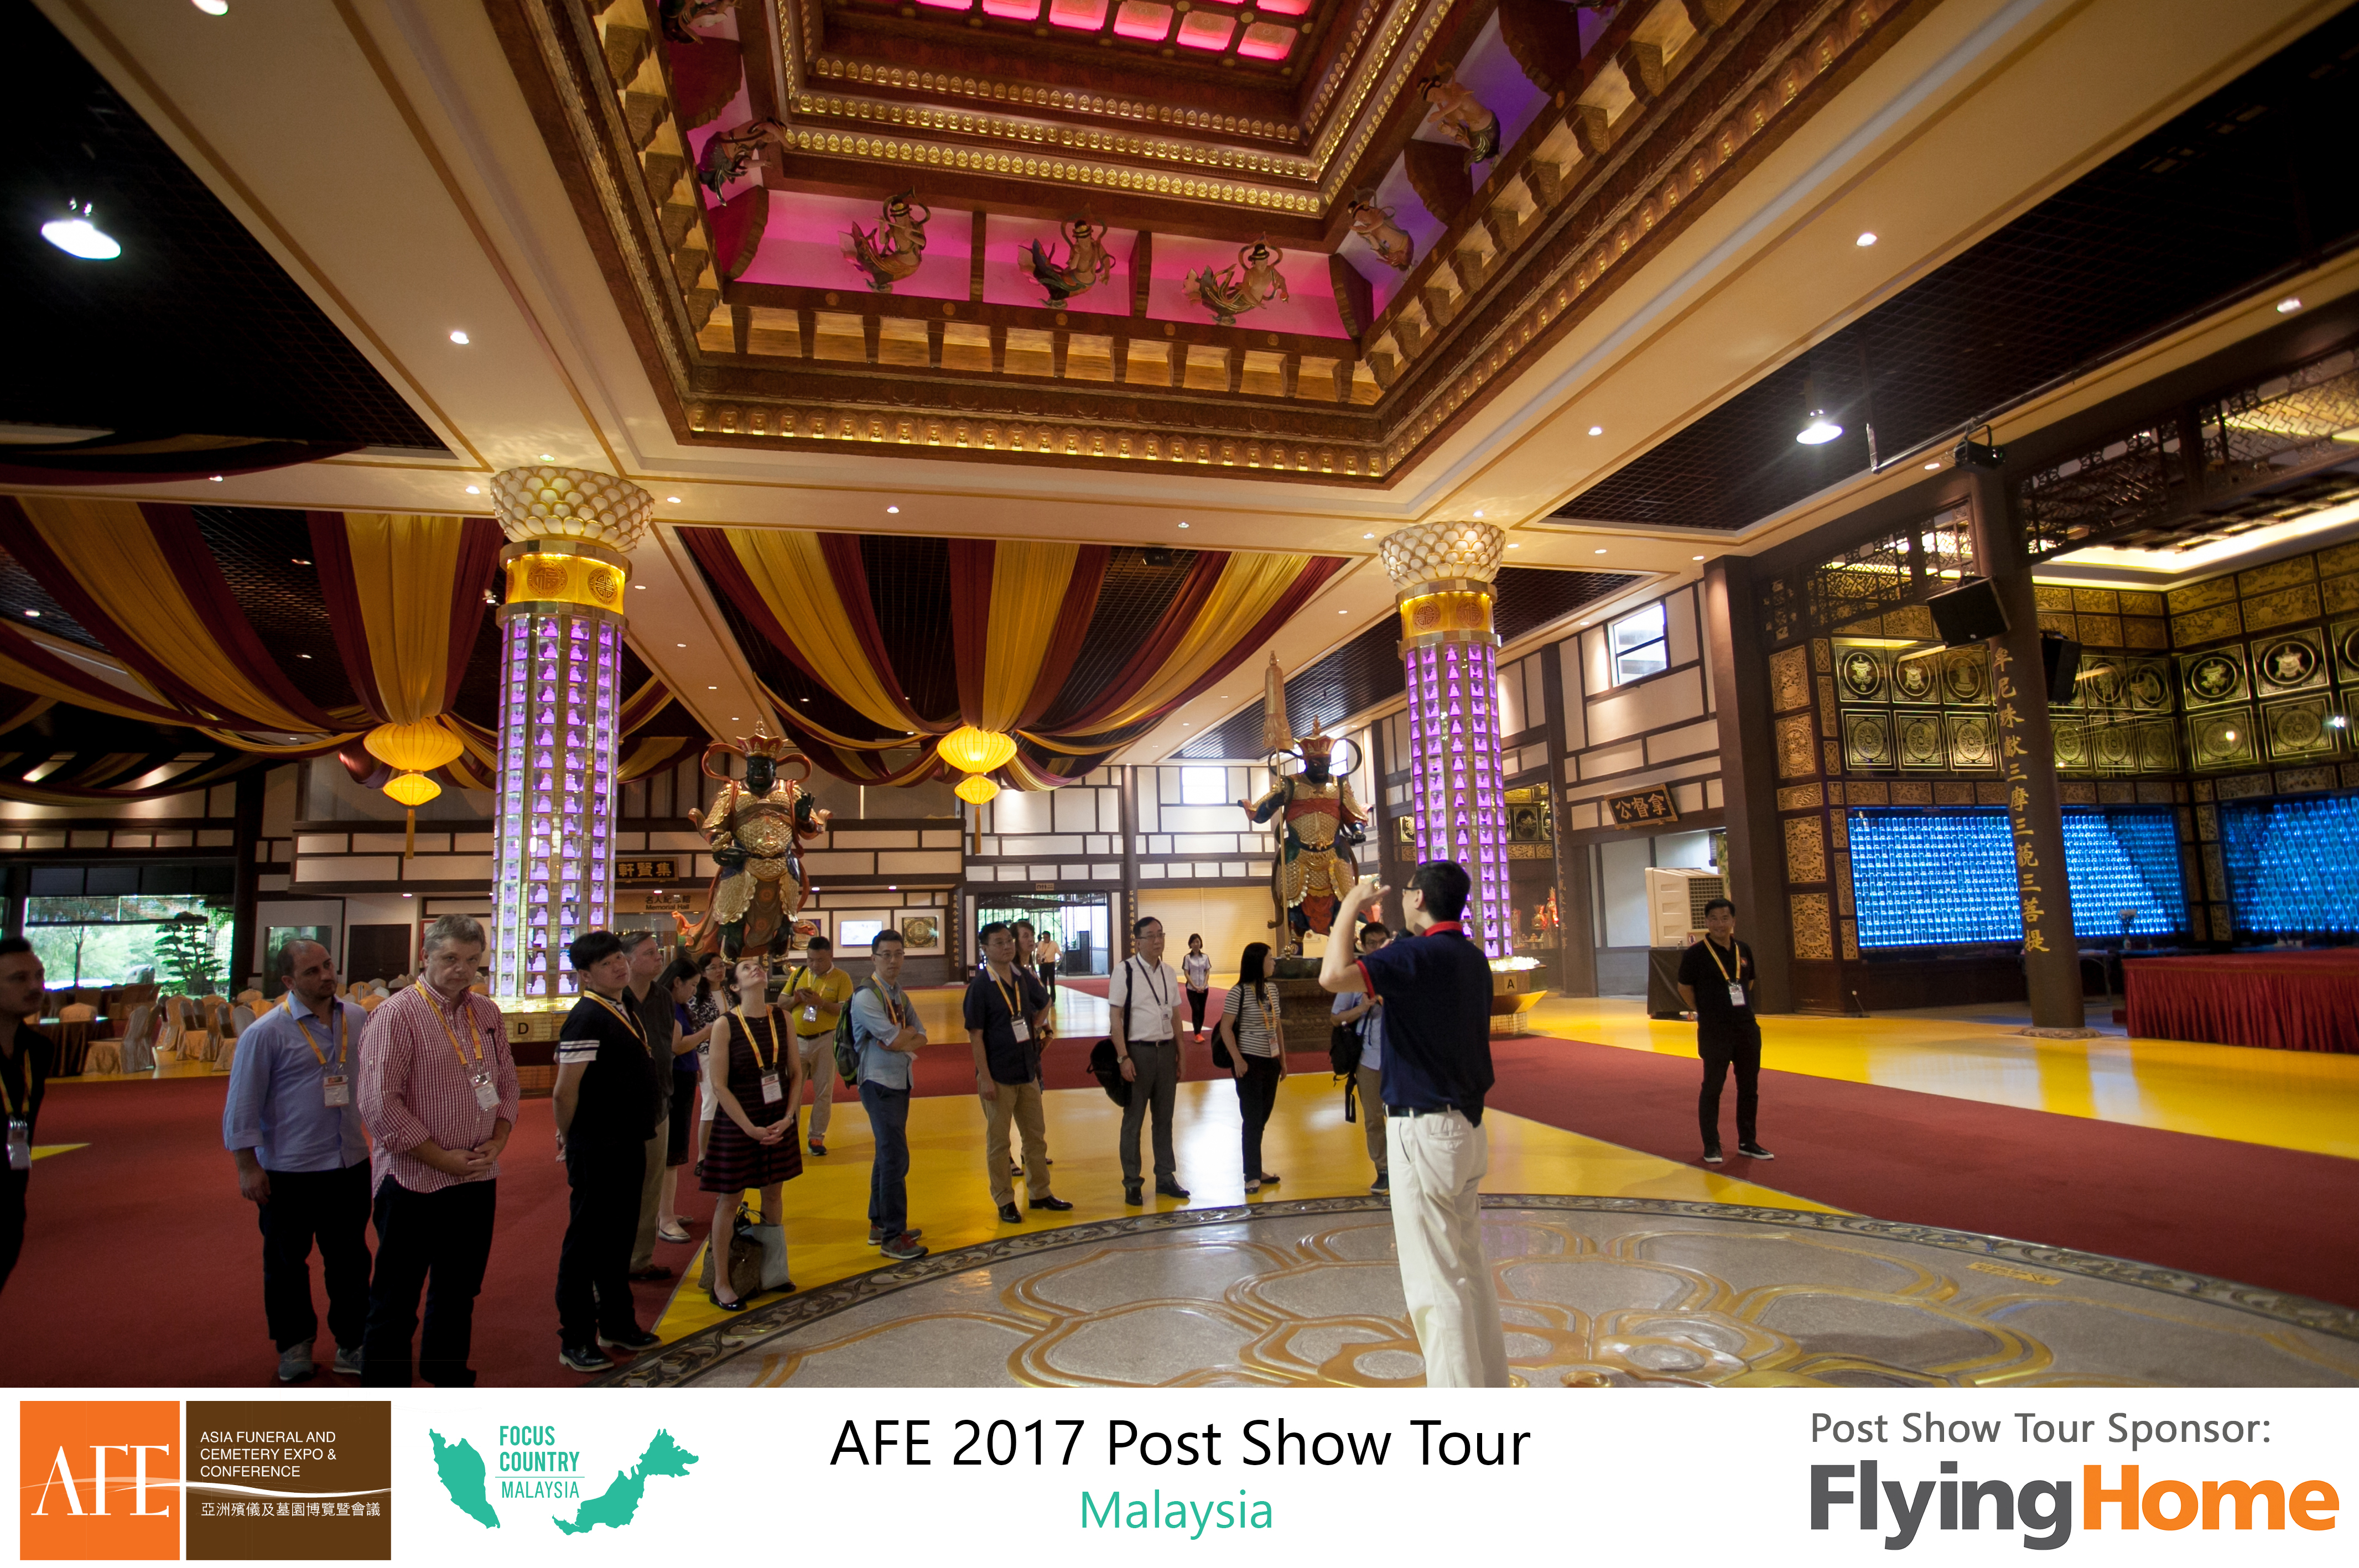 AFE Post Show Tour 2017 Day 2 - 67